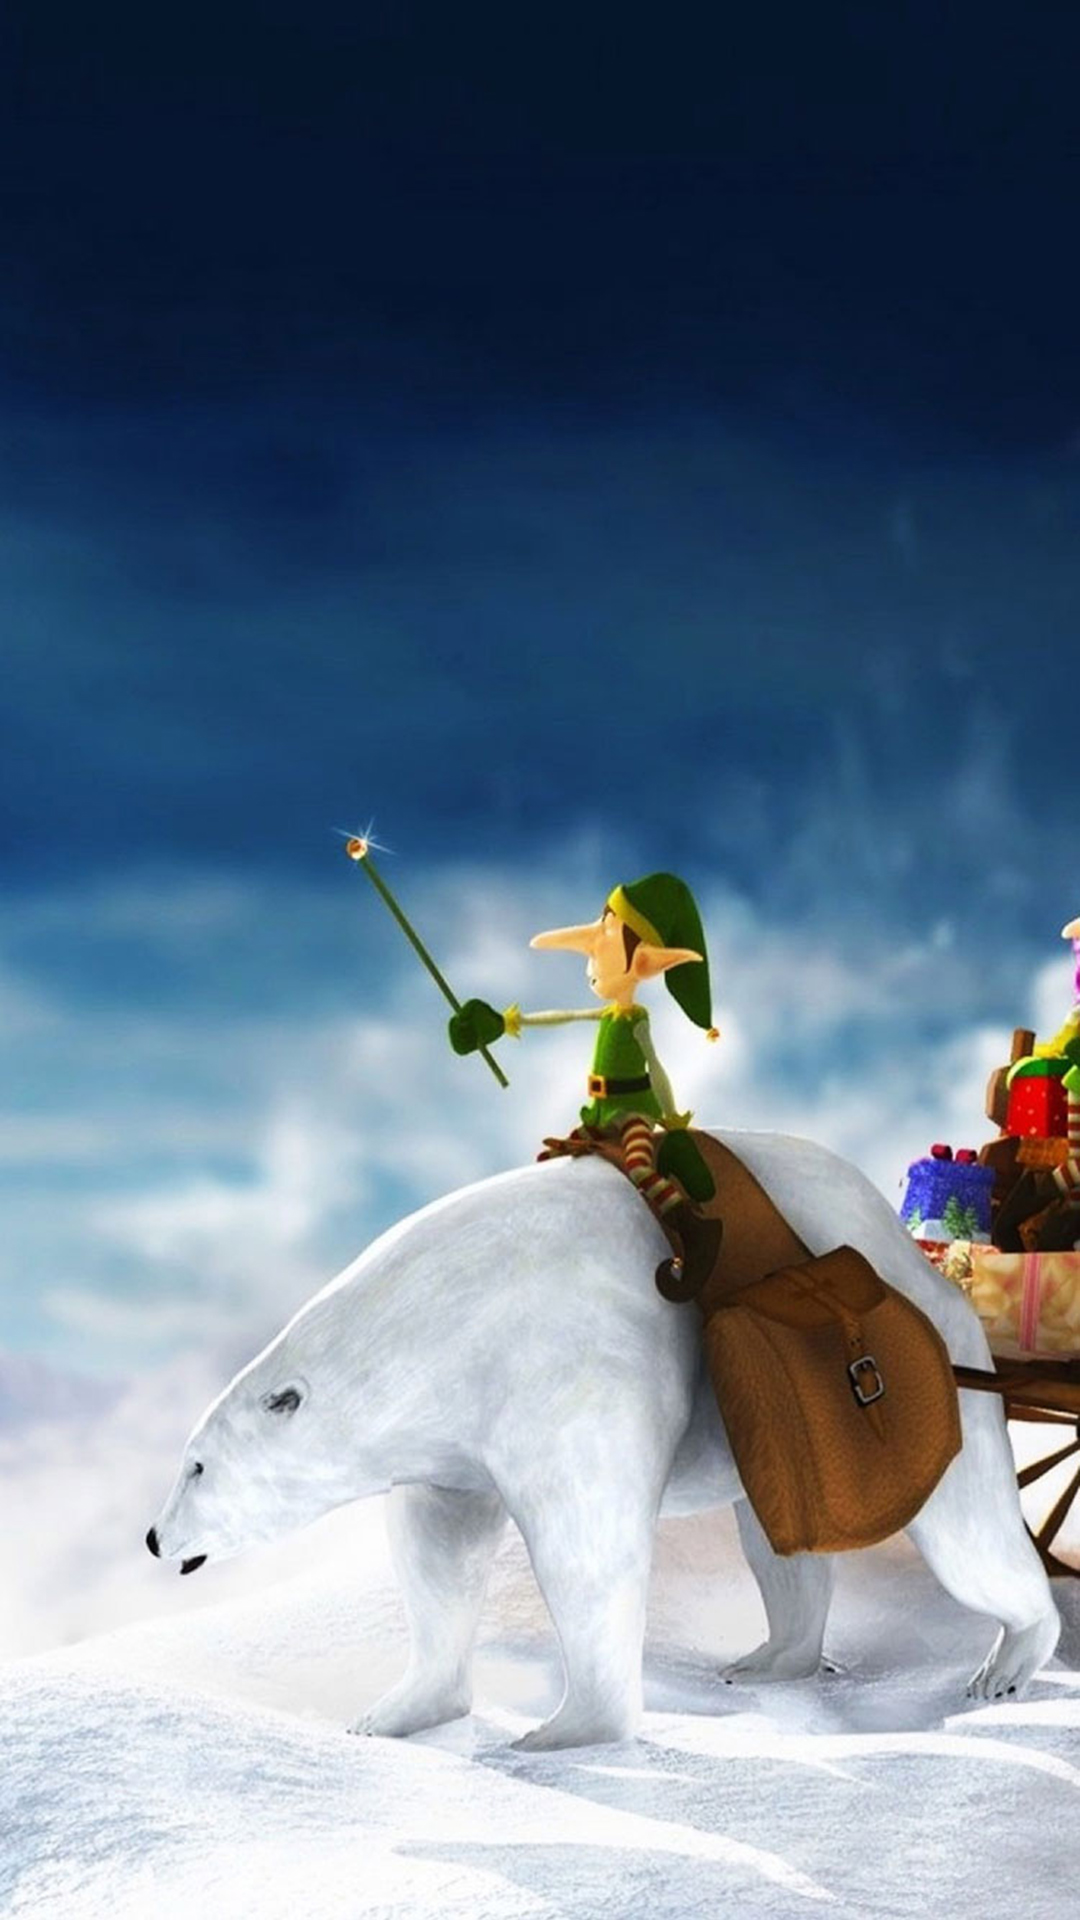 Christmas Wallpaper Iphone 6 By Blackberyy Themes - Christmas Day Hd Image Download , HD Wallpaper & Backgrounds